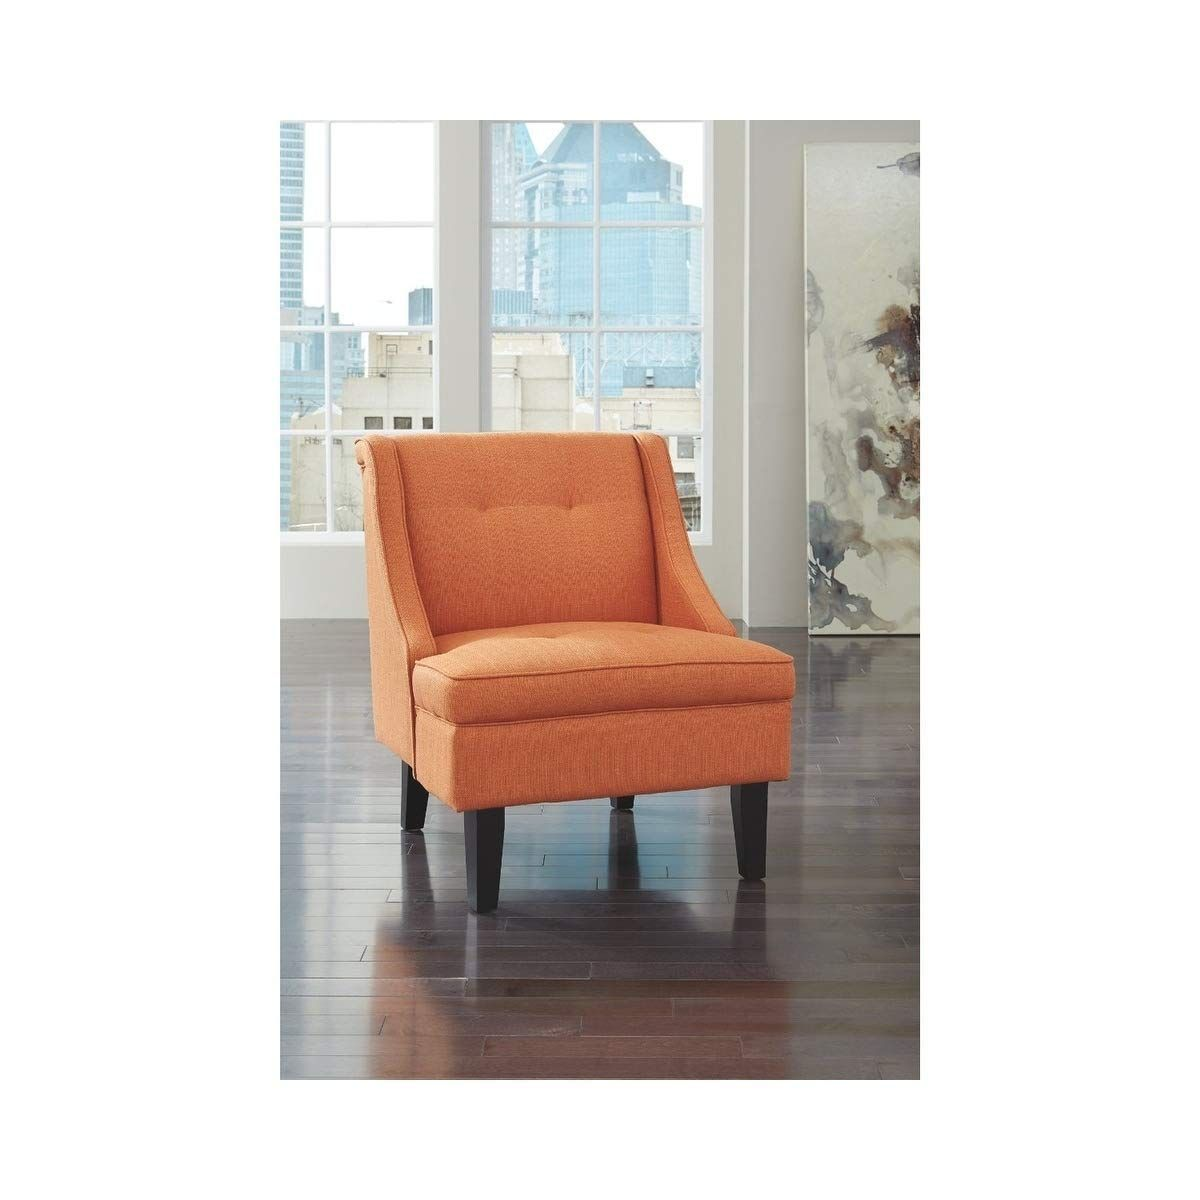 Signature Design By Ashley Accent Chair In Orange Wonderful Of You To Have Dropped By To See Ashley Furniture Living Room Accent Chairs Orange Accent Chair